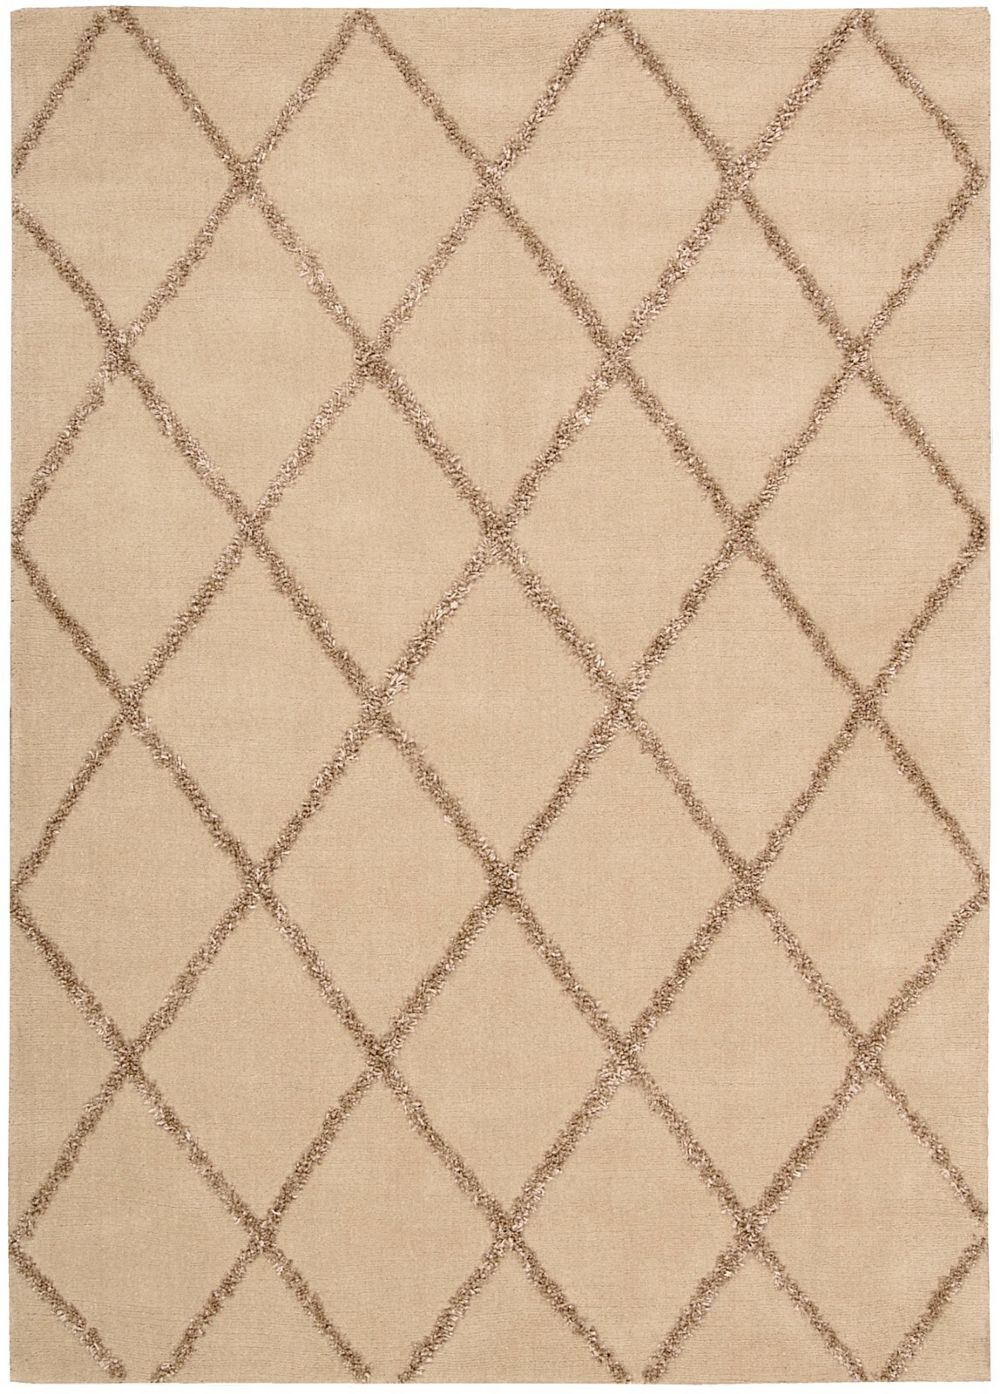 joseph abboud monterey contemporary area rug collection